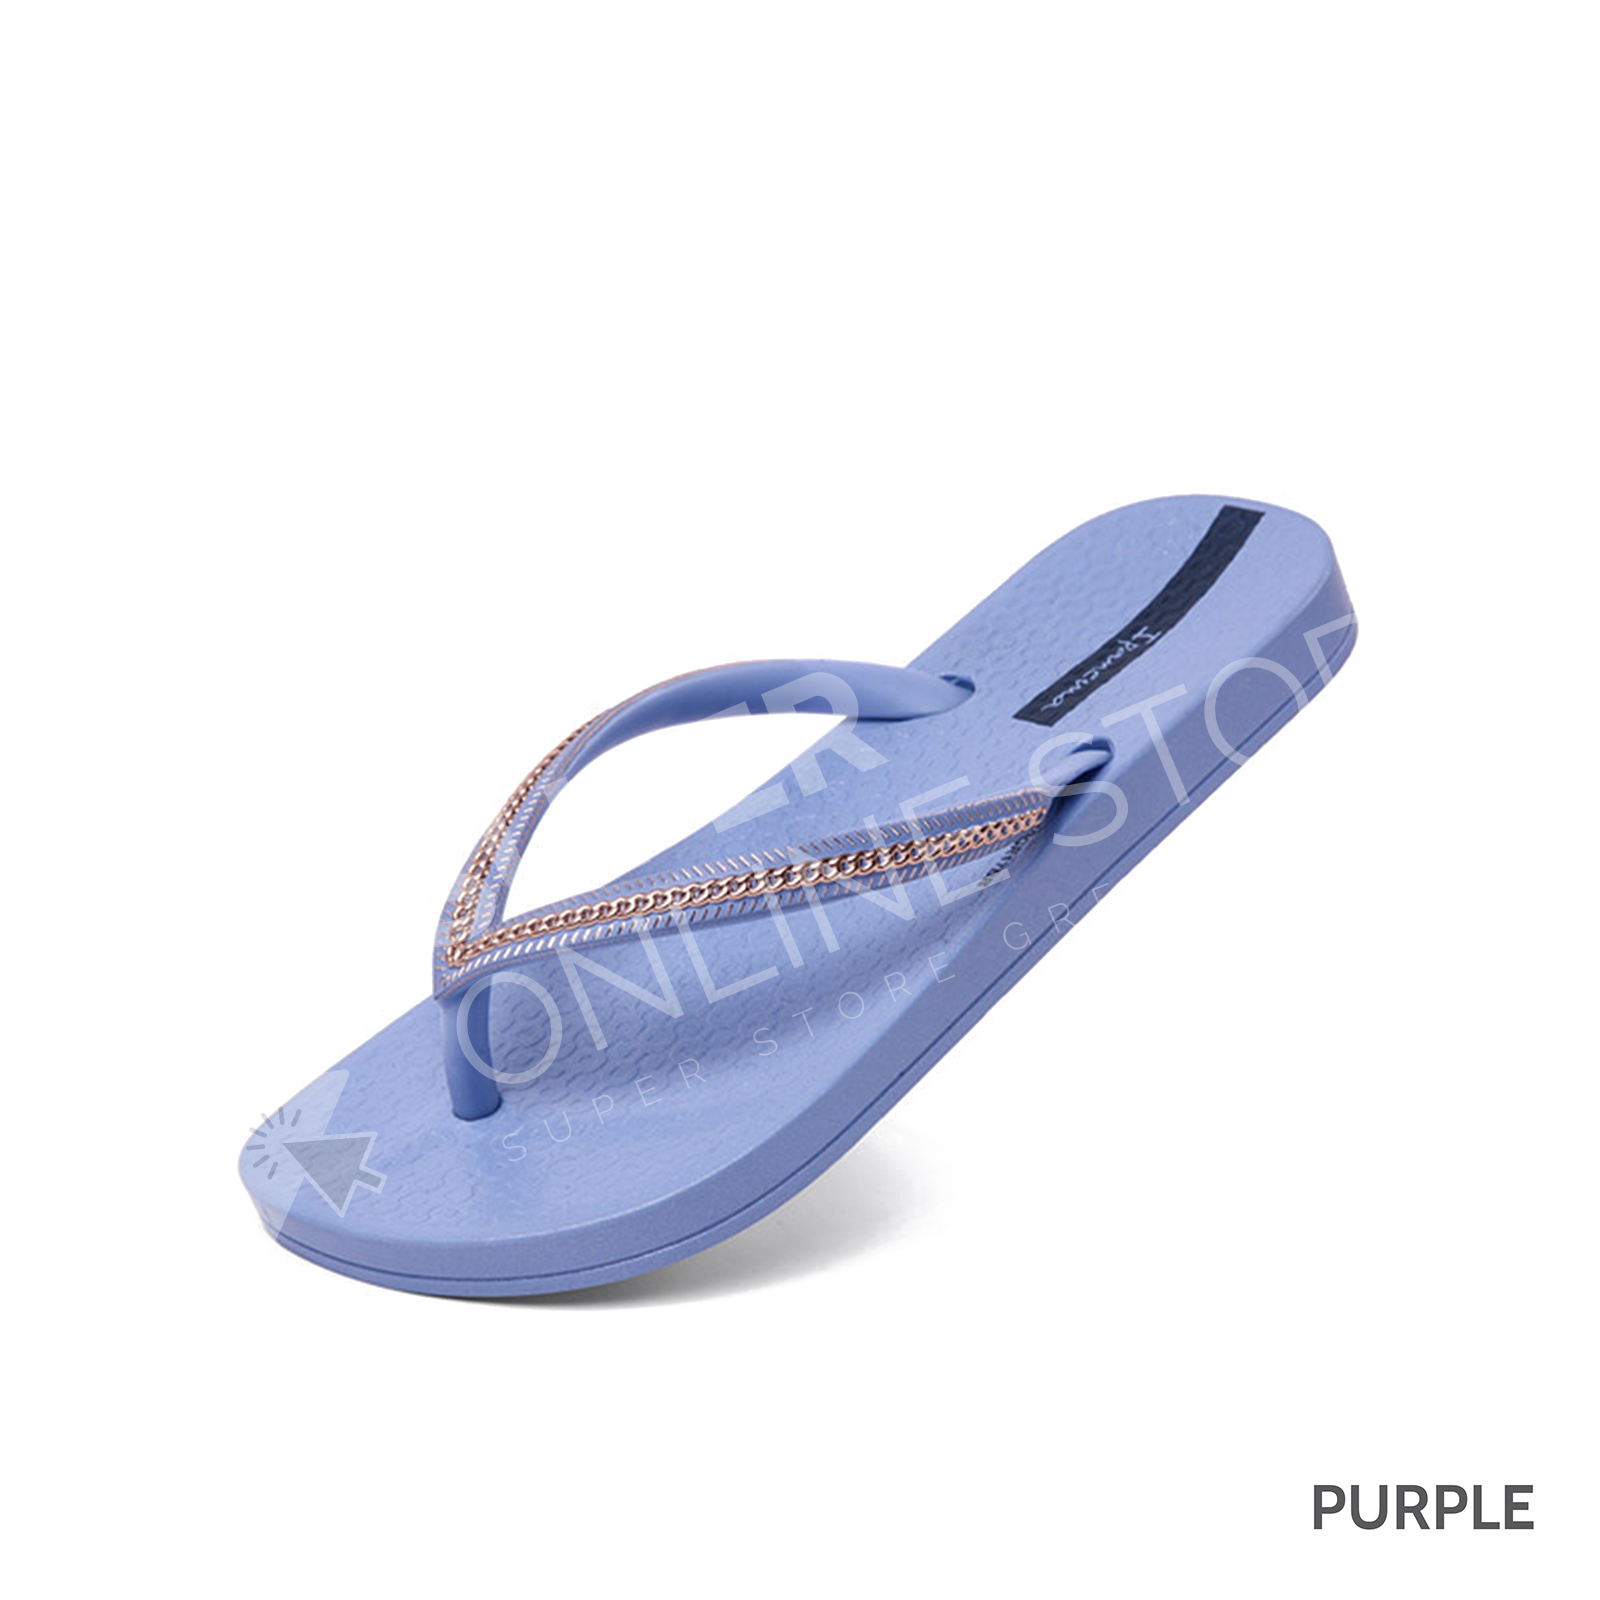 fcb5e89f9474 Details about IPANEMA Girl s Flip Flops New Slim Sandals Footwear Thongs  Comfortable 3 Colors